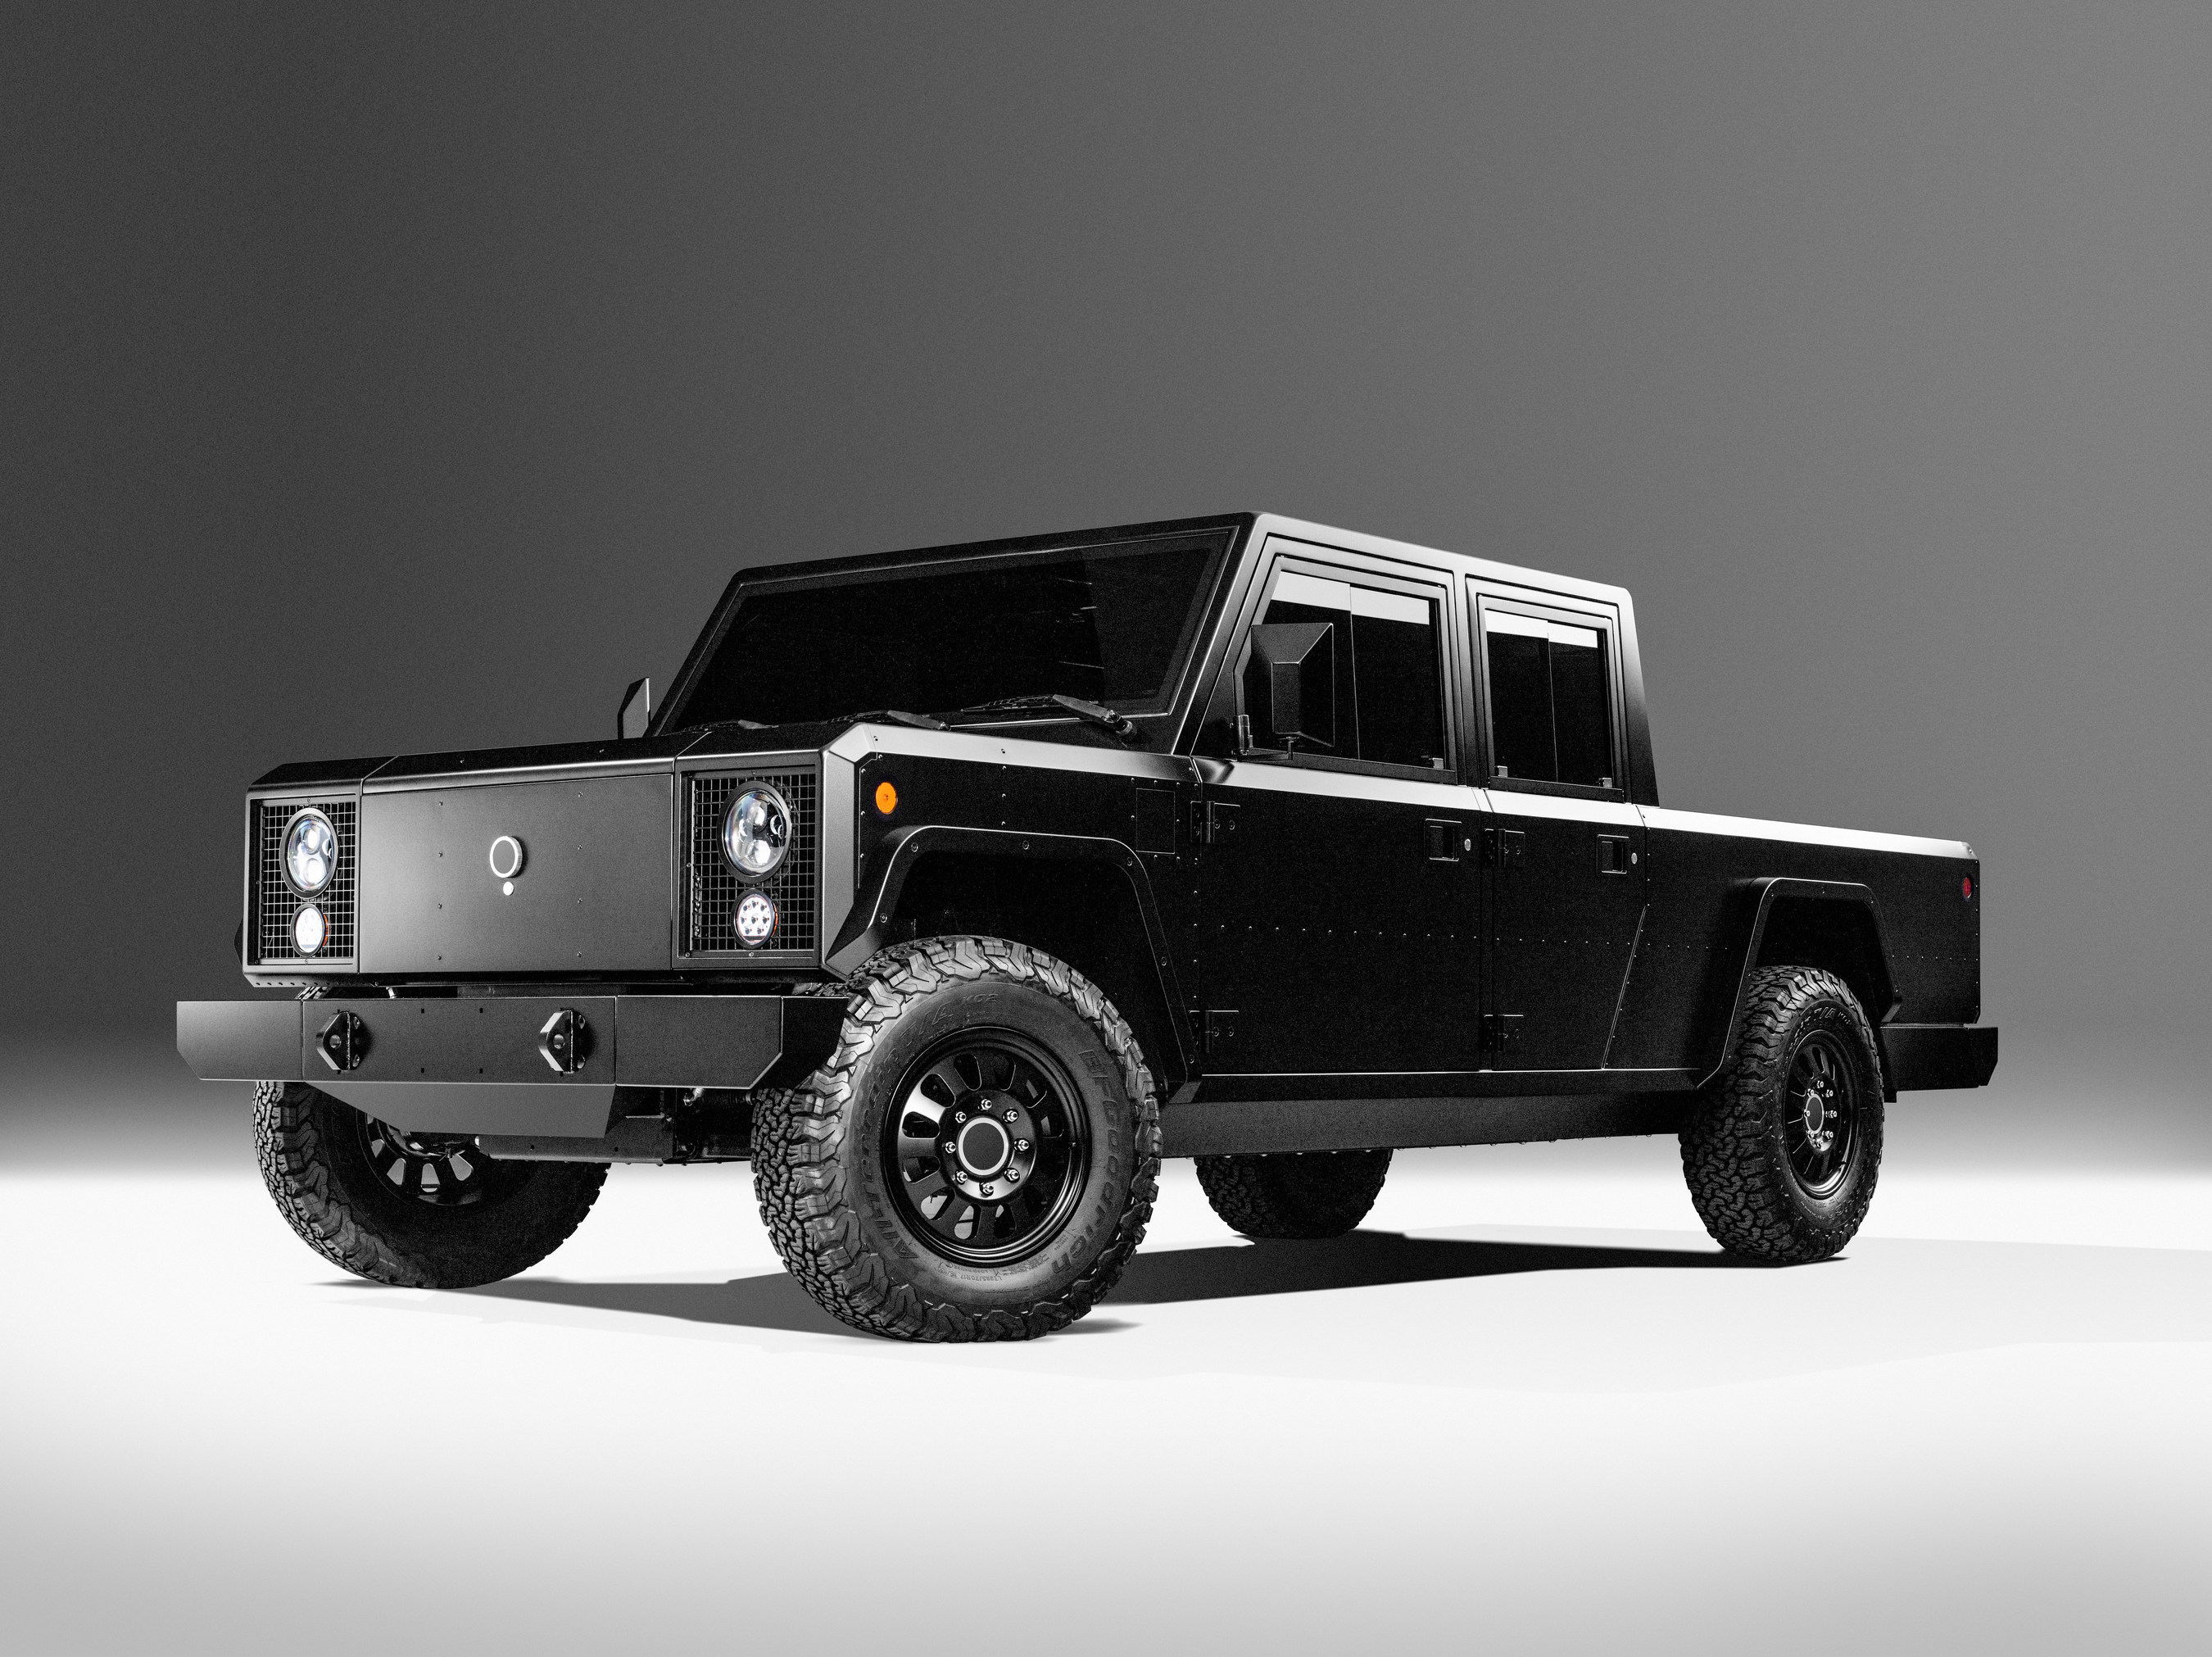 2021 Bollinger B2 electric pickup truck